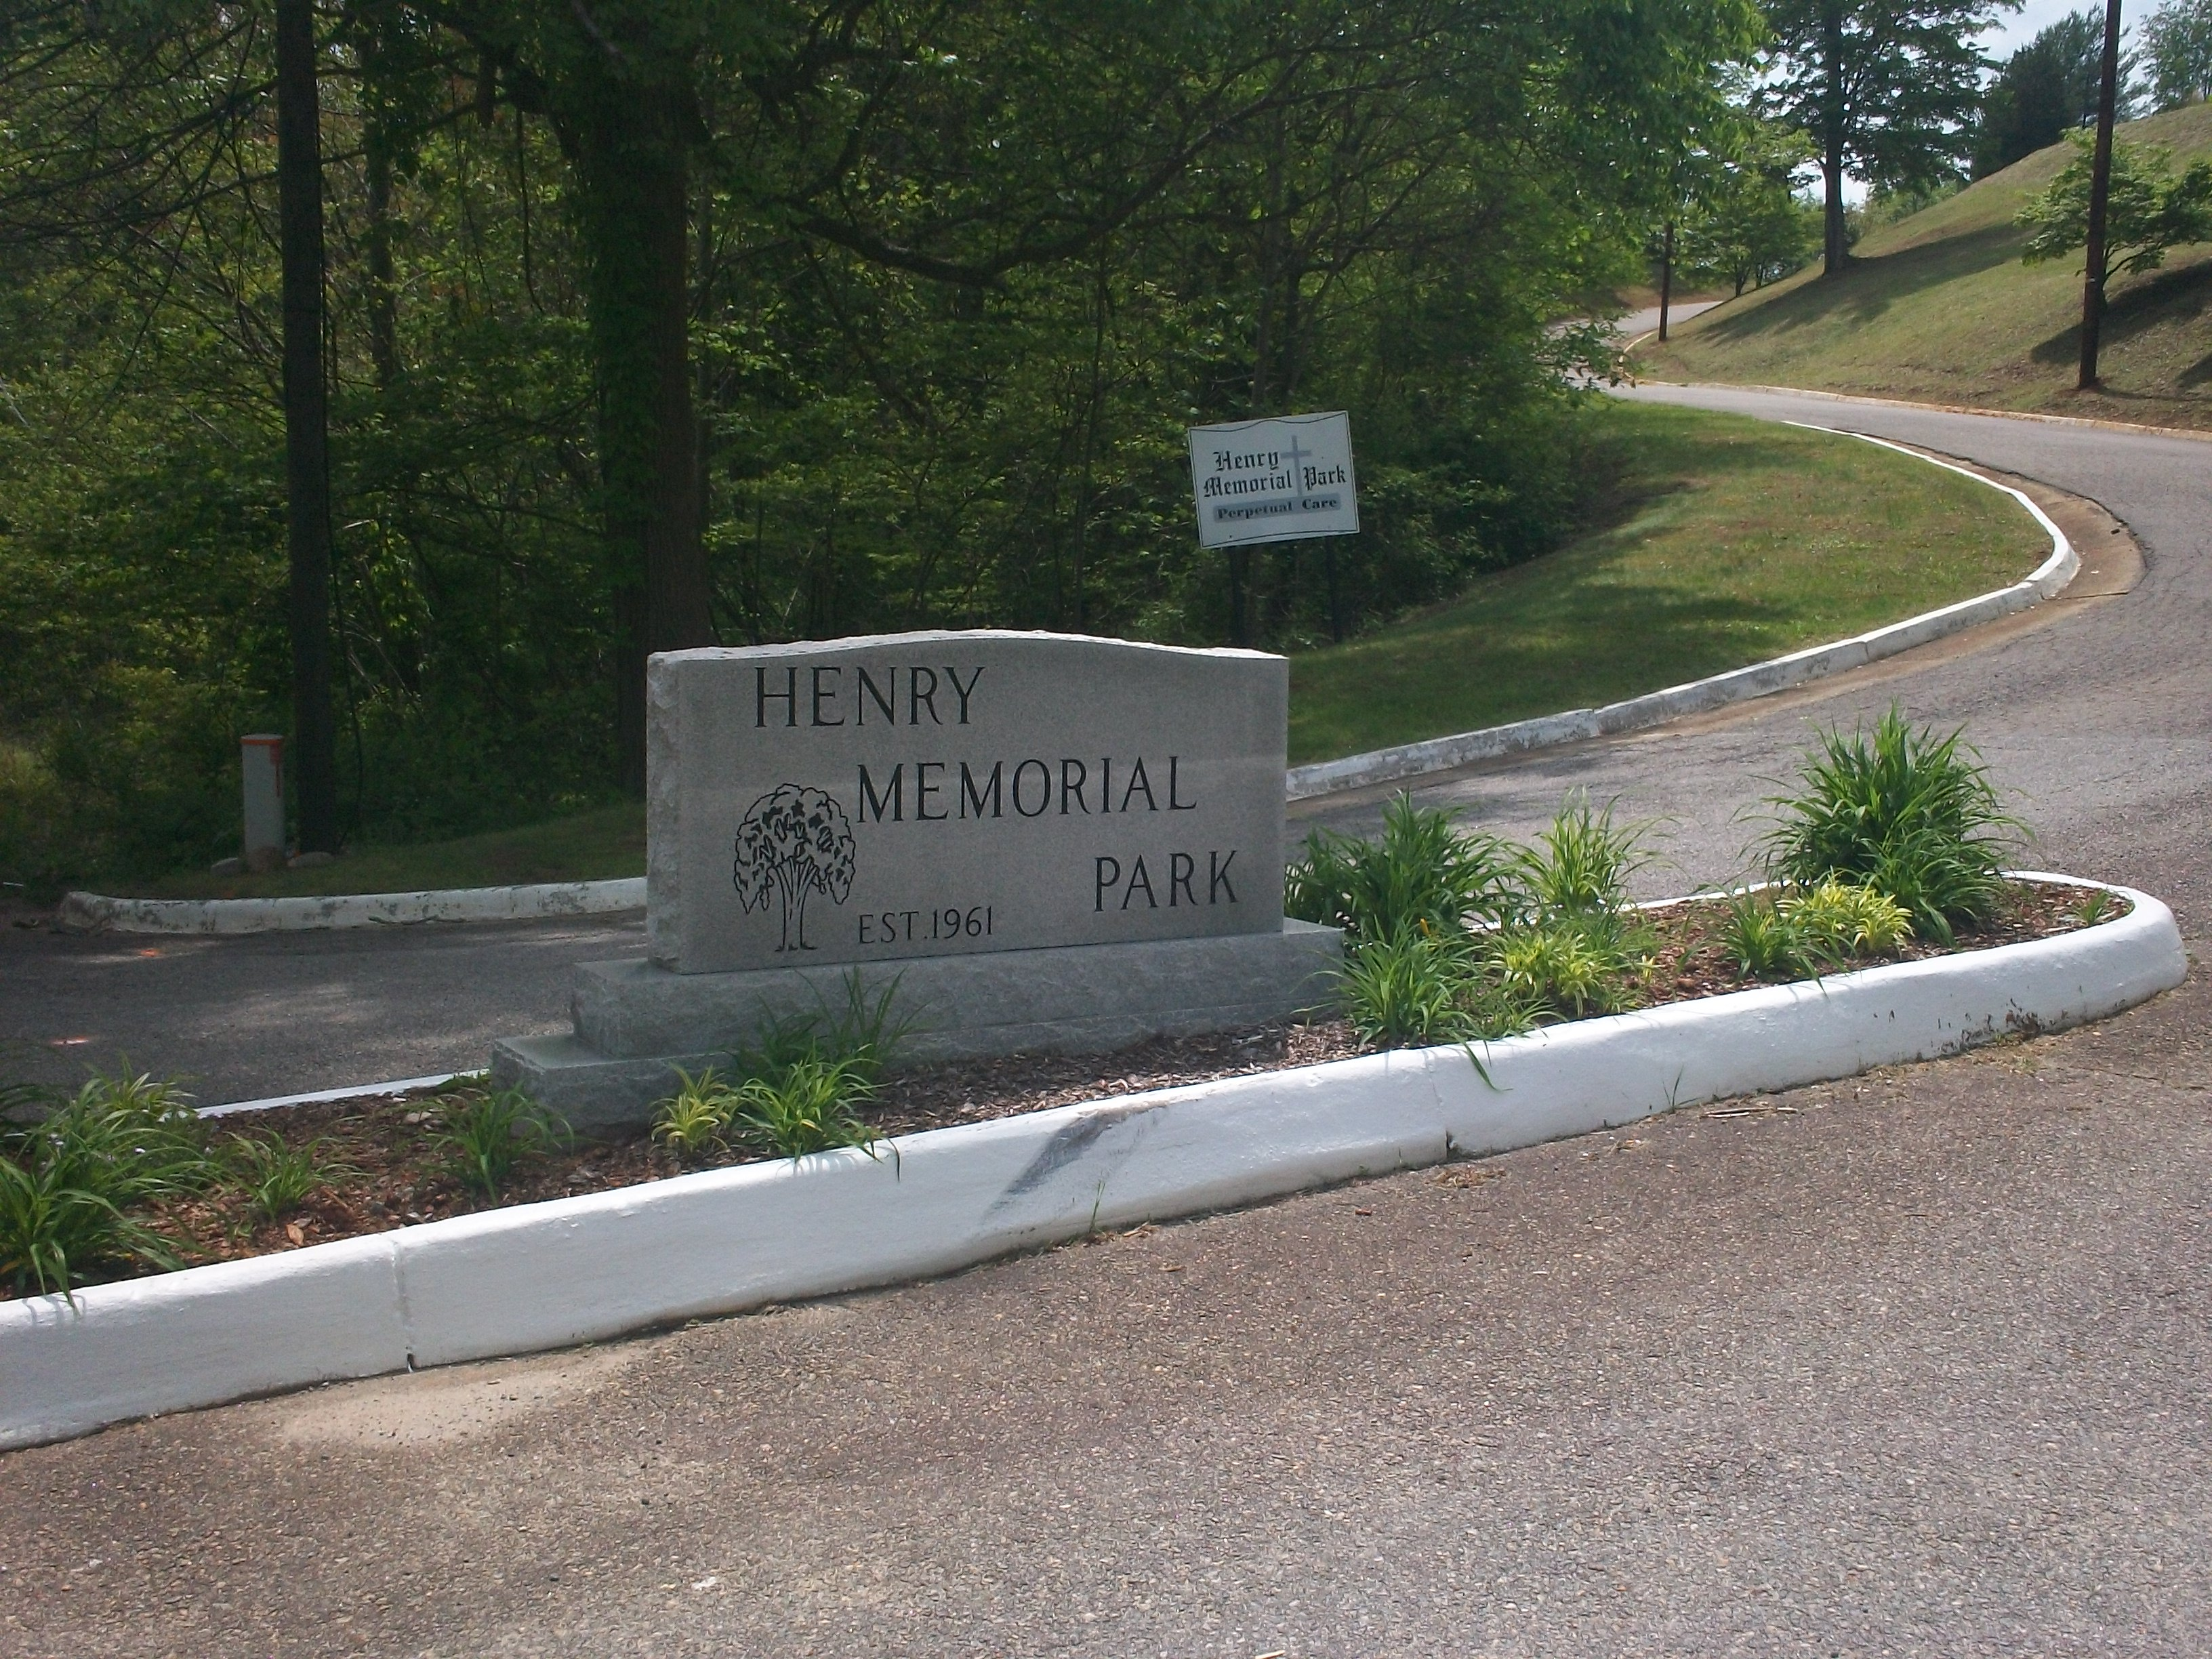 Henry Memorial Park cemetery in Virginia